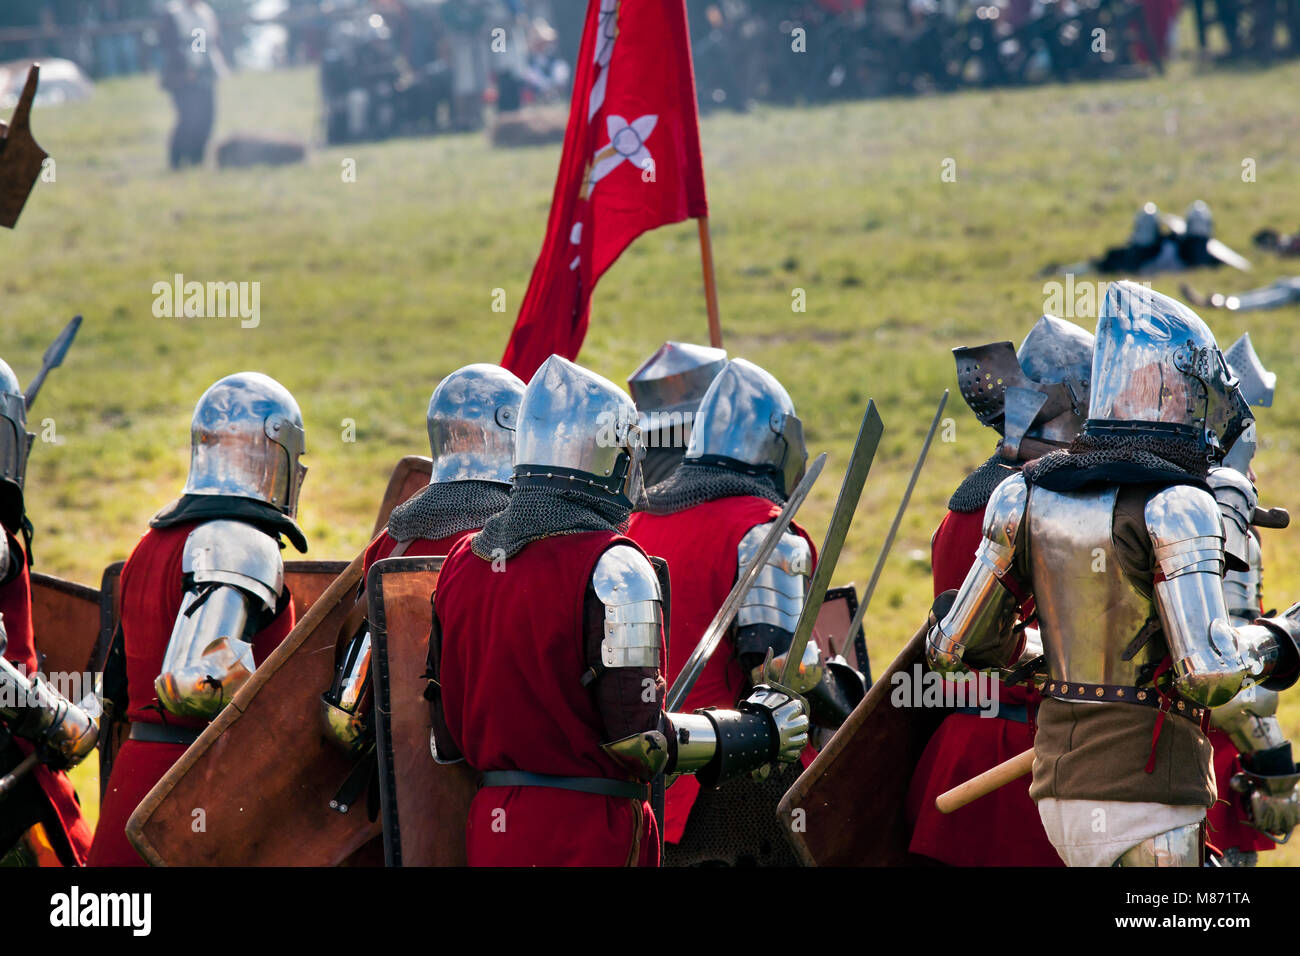 """Heay Armored Medieval Knights ready for the battle at """"Battle of Grunwald 1410"""" reenacting  event. GRUNWALD, POLAND Stock Photo"""